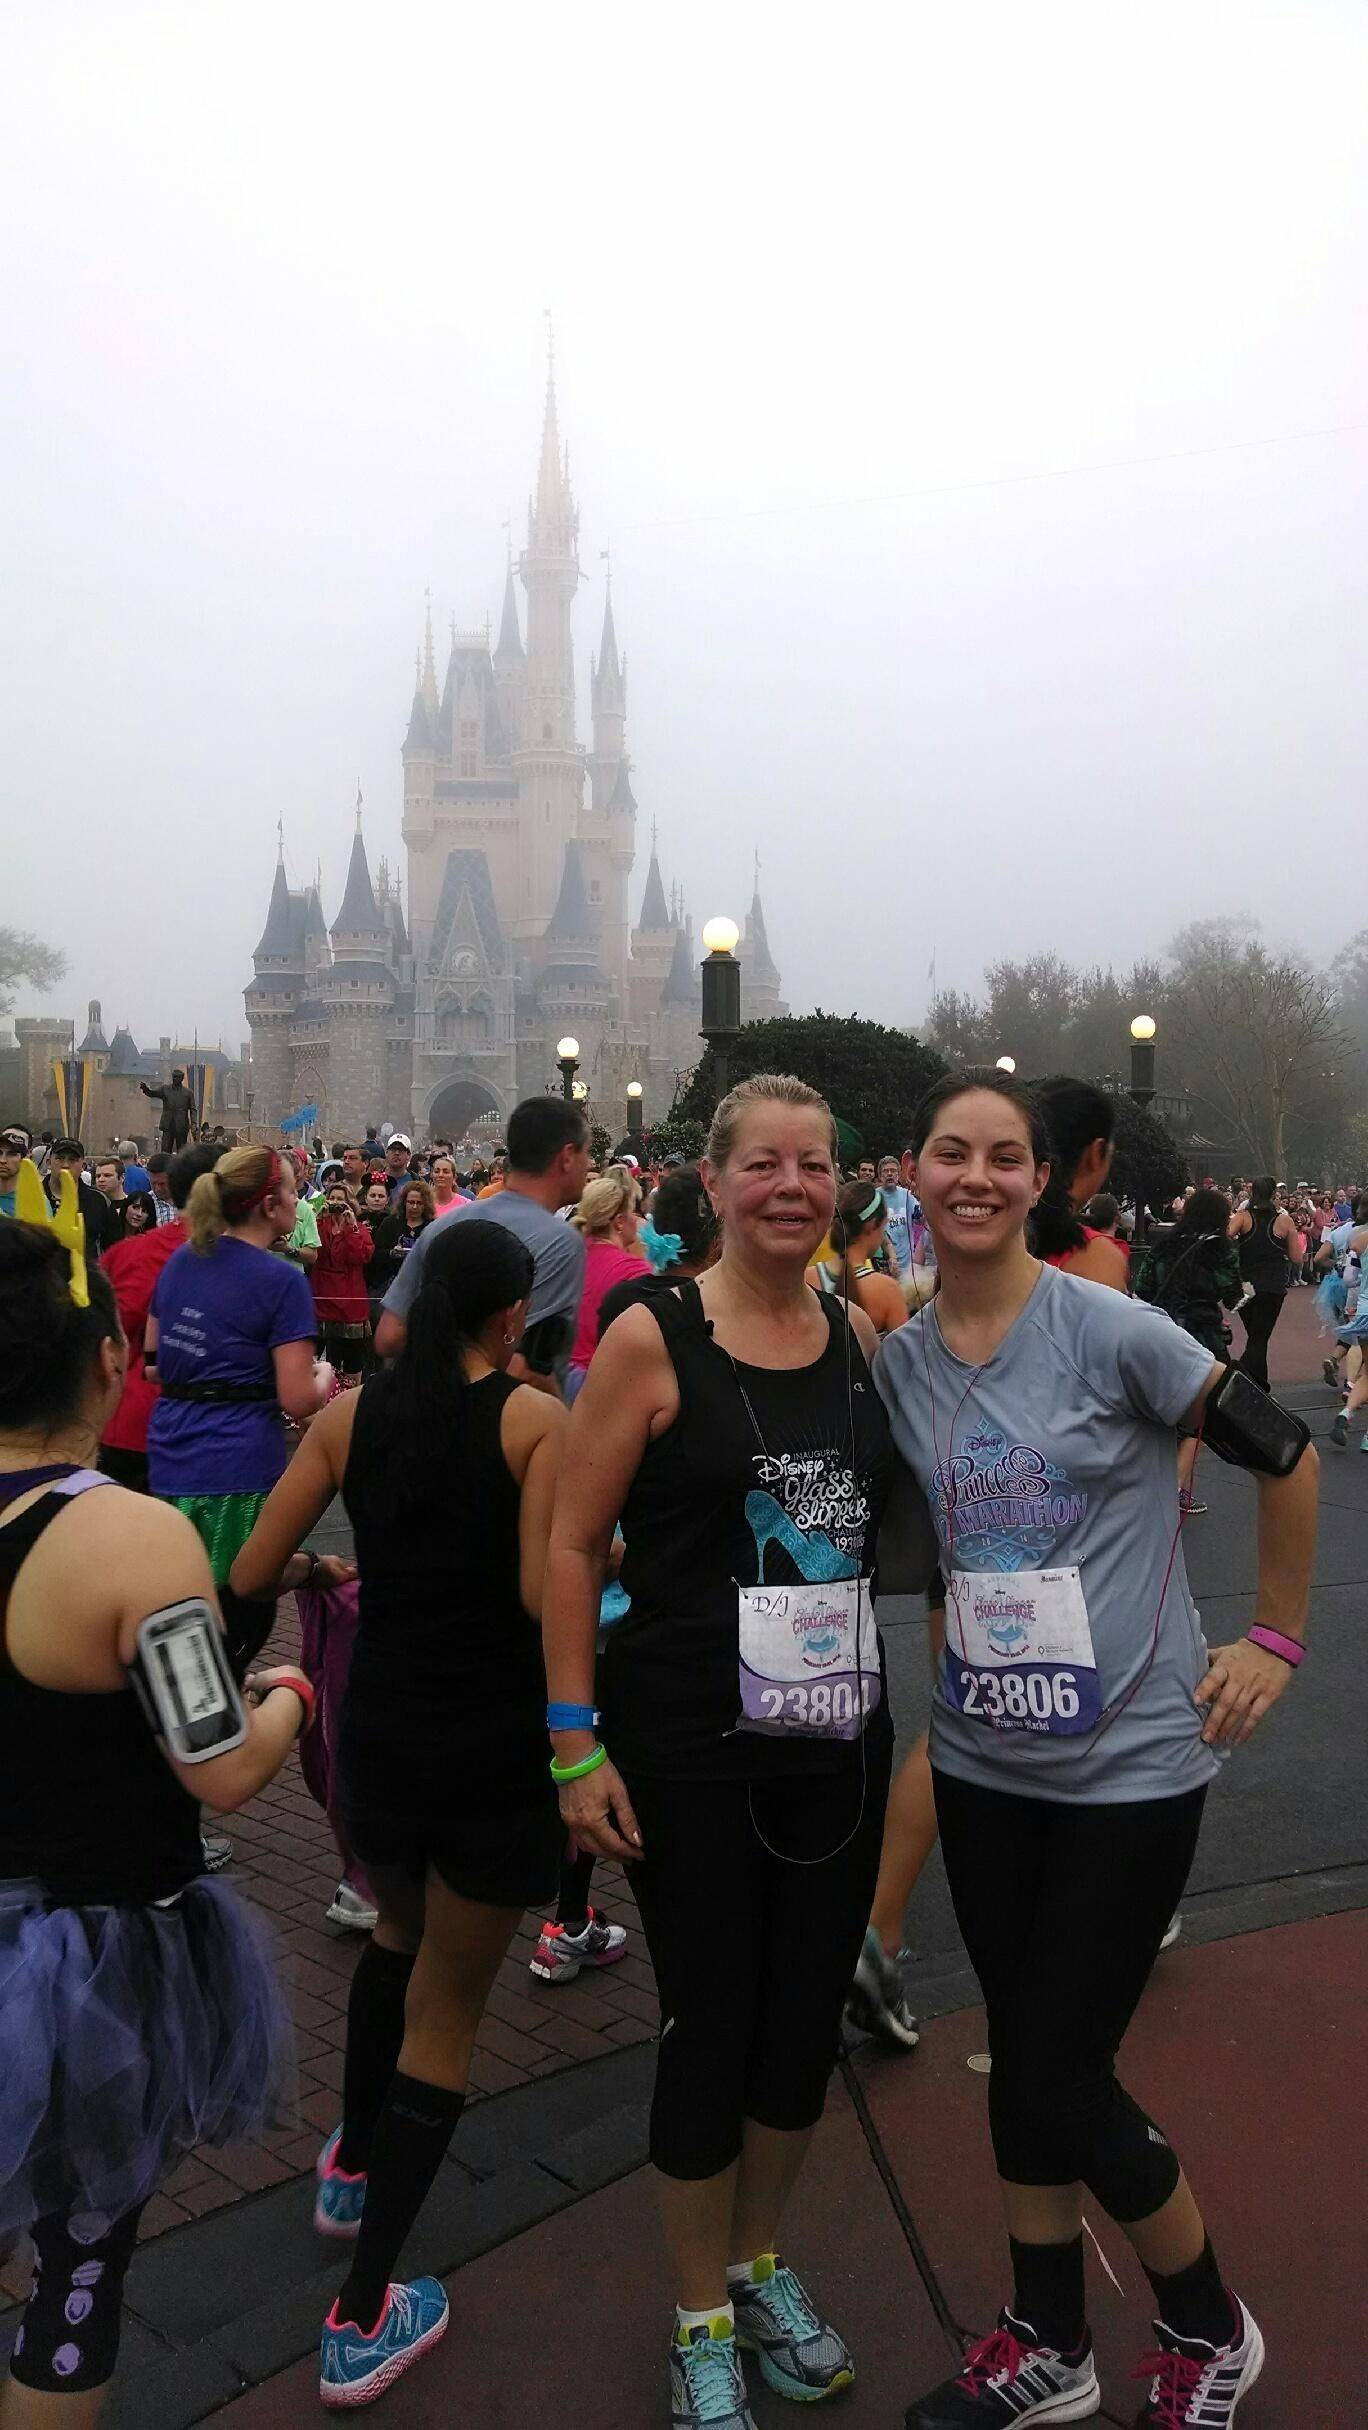 Aurora residents Jackie Horvath and daughter Rachel pose in front of the Magic Kingdom's Cinderella Castle during the Princess Half Marathon last month at Walt Disney World in Florida.